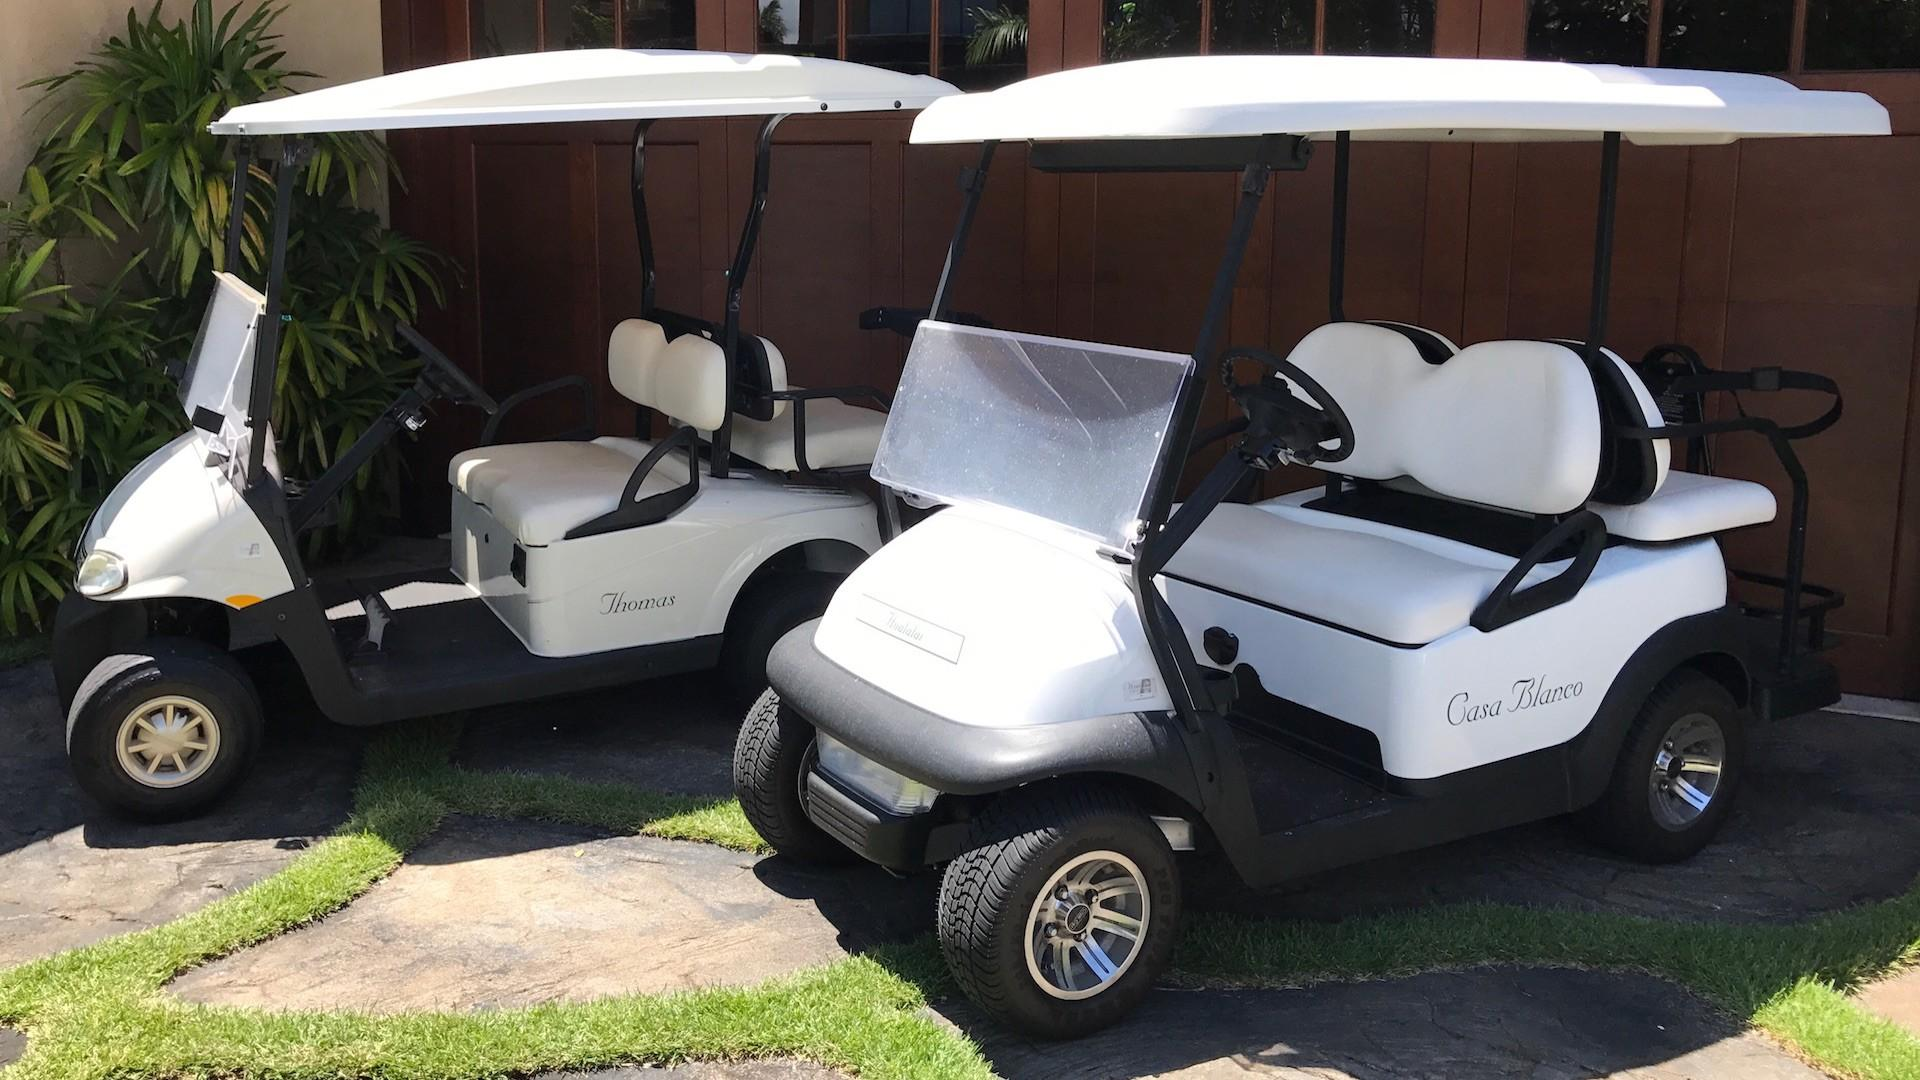 Two golf carts included for cruising the resort in style.